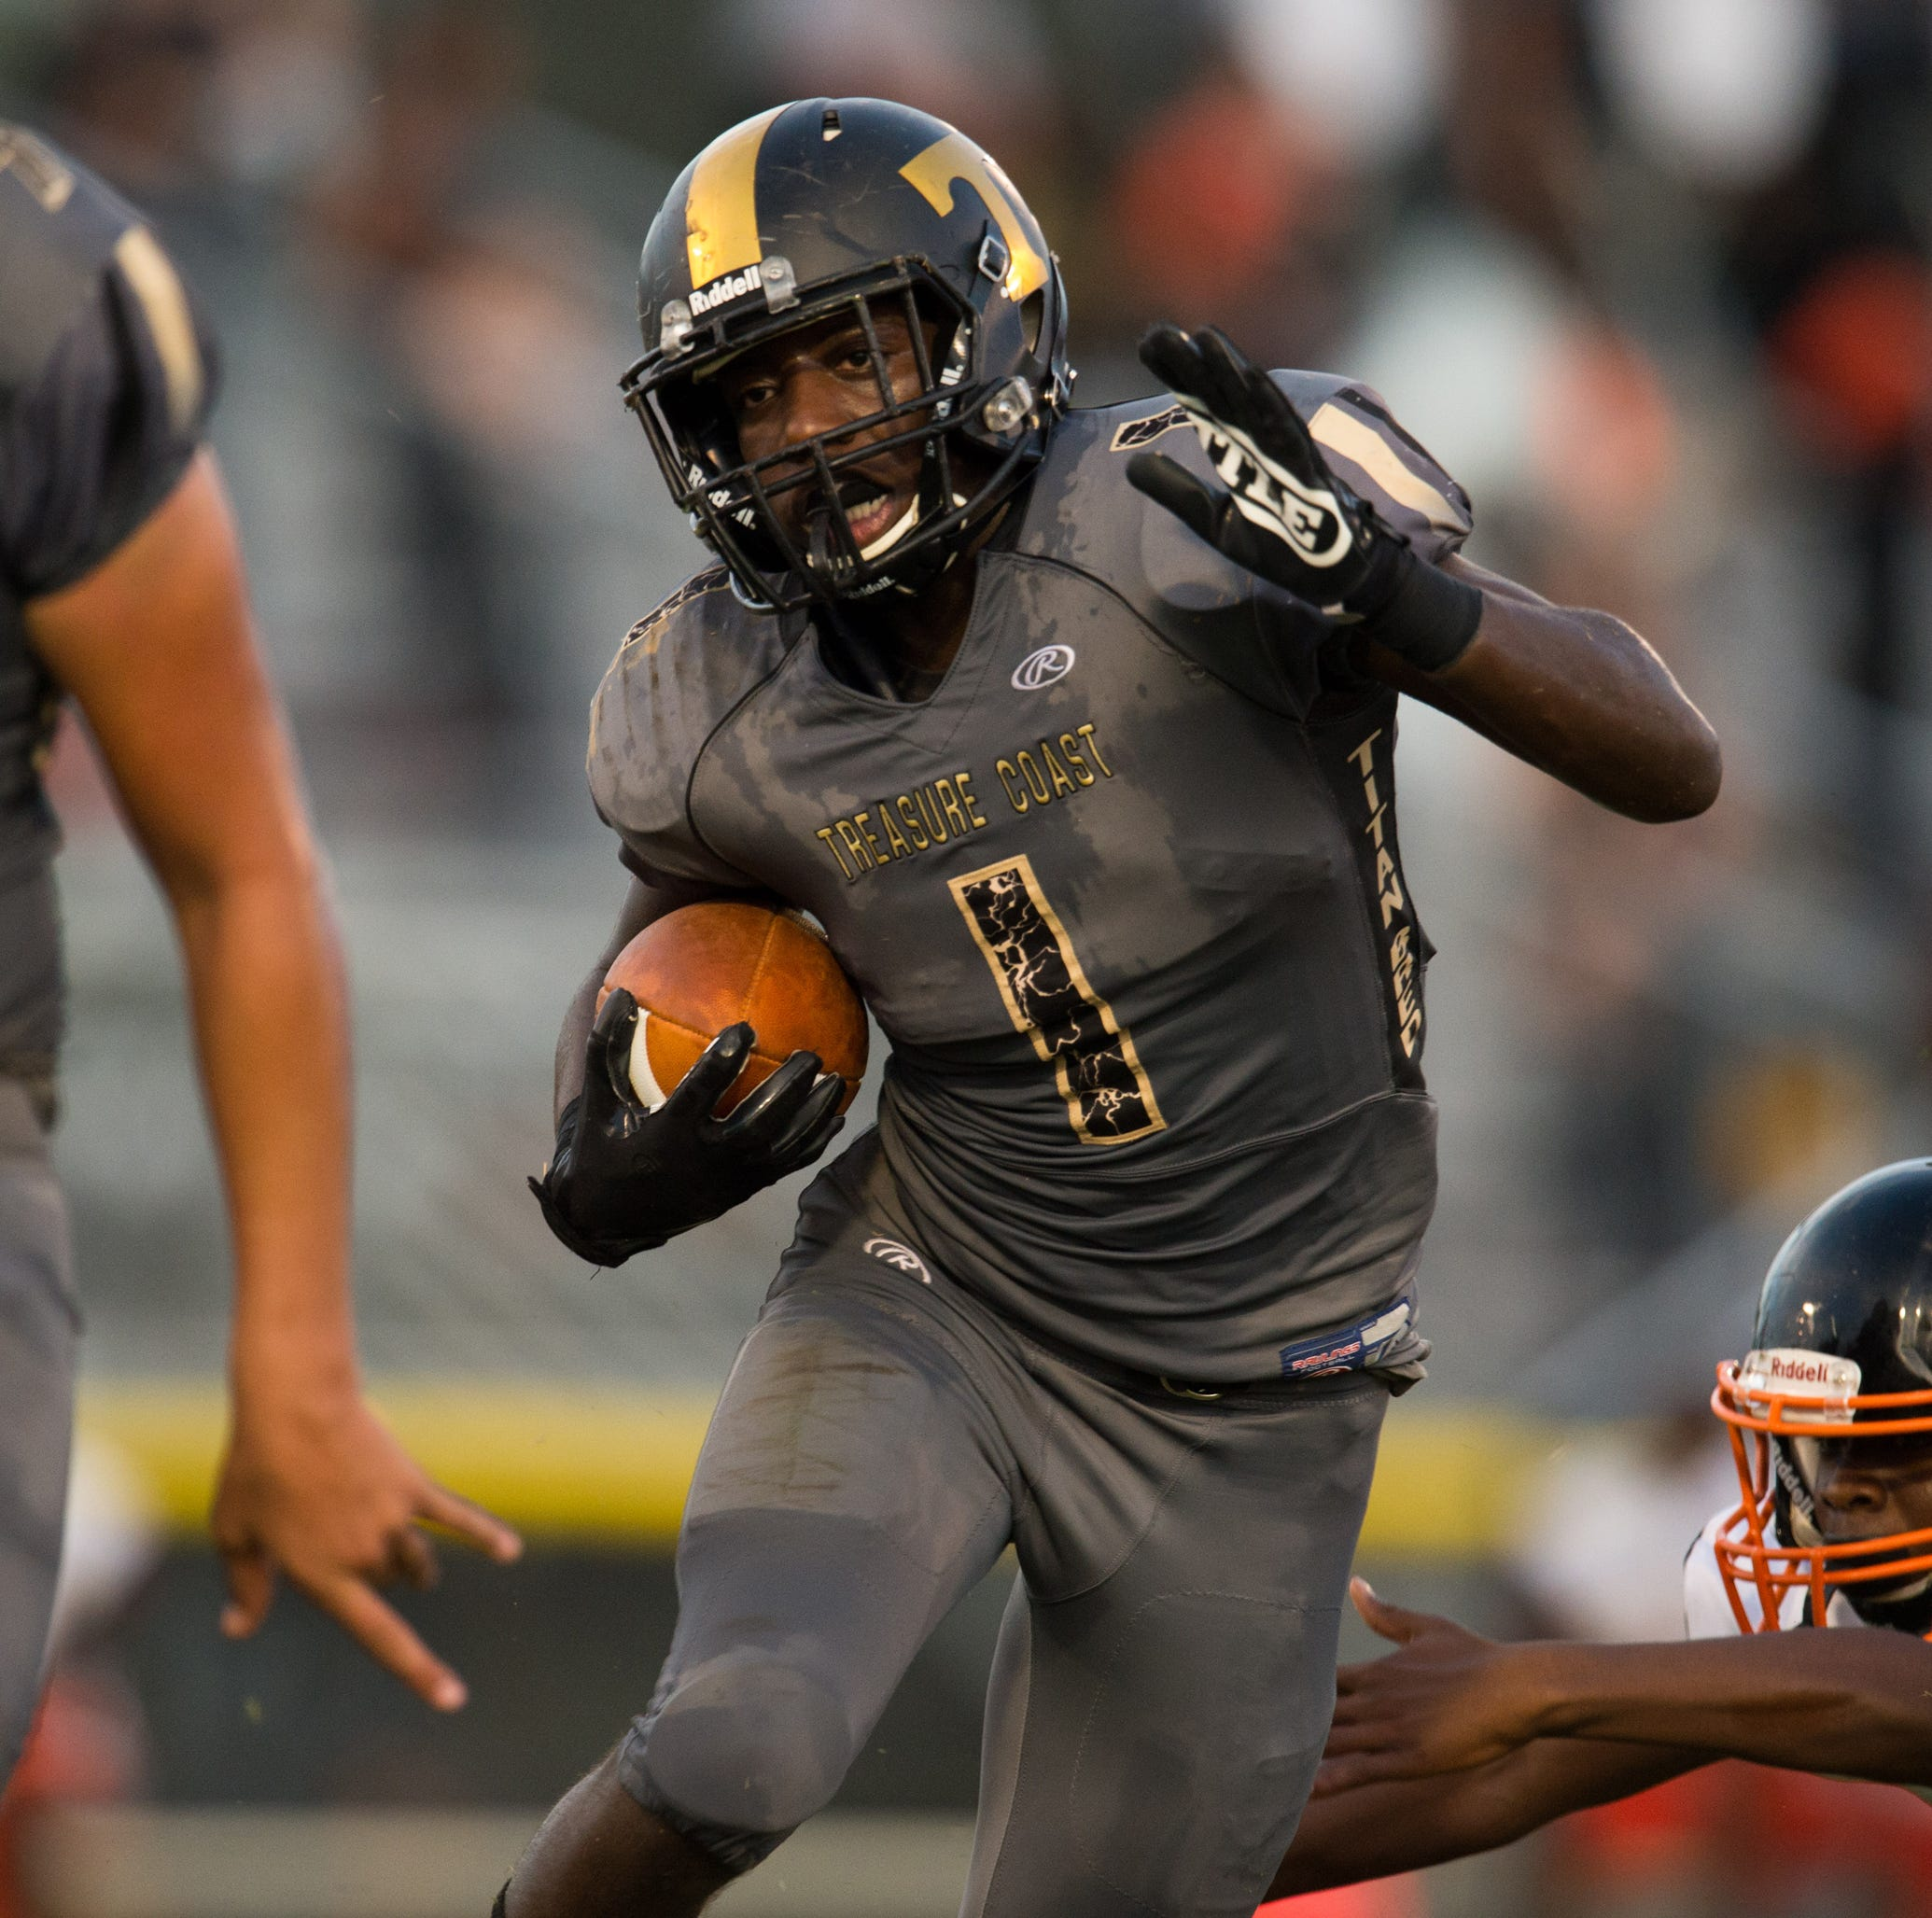 FHSAA district realignment changes local football landscape